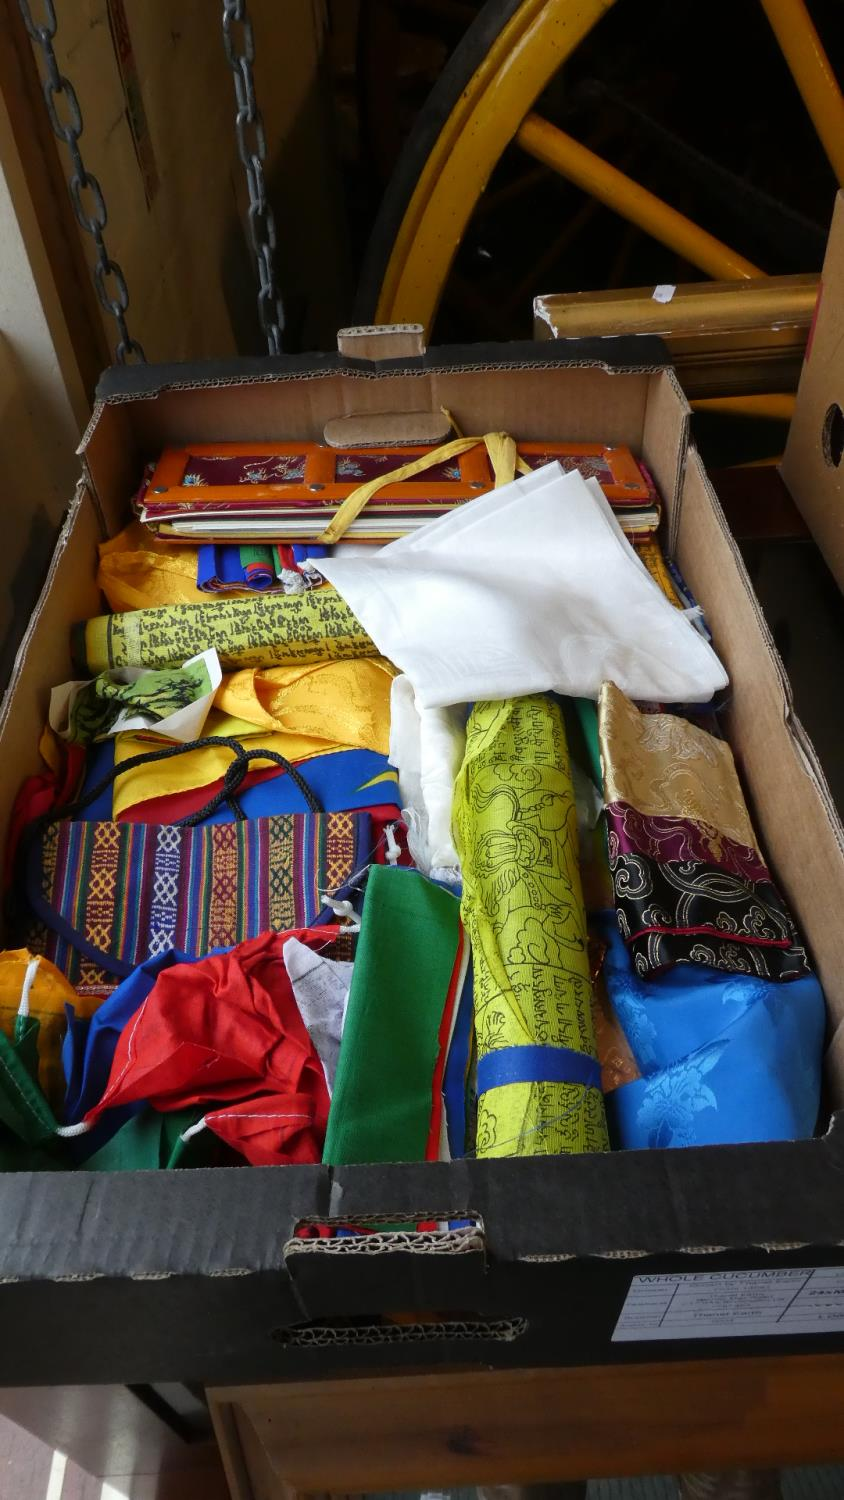 Lot 322 - A Box Containing Colourful Buddhist Prayer Flags, Panels and Fabrics